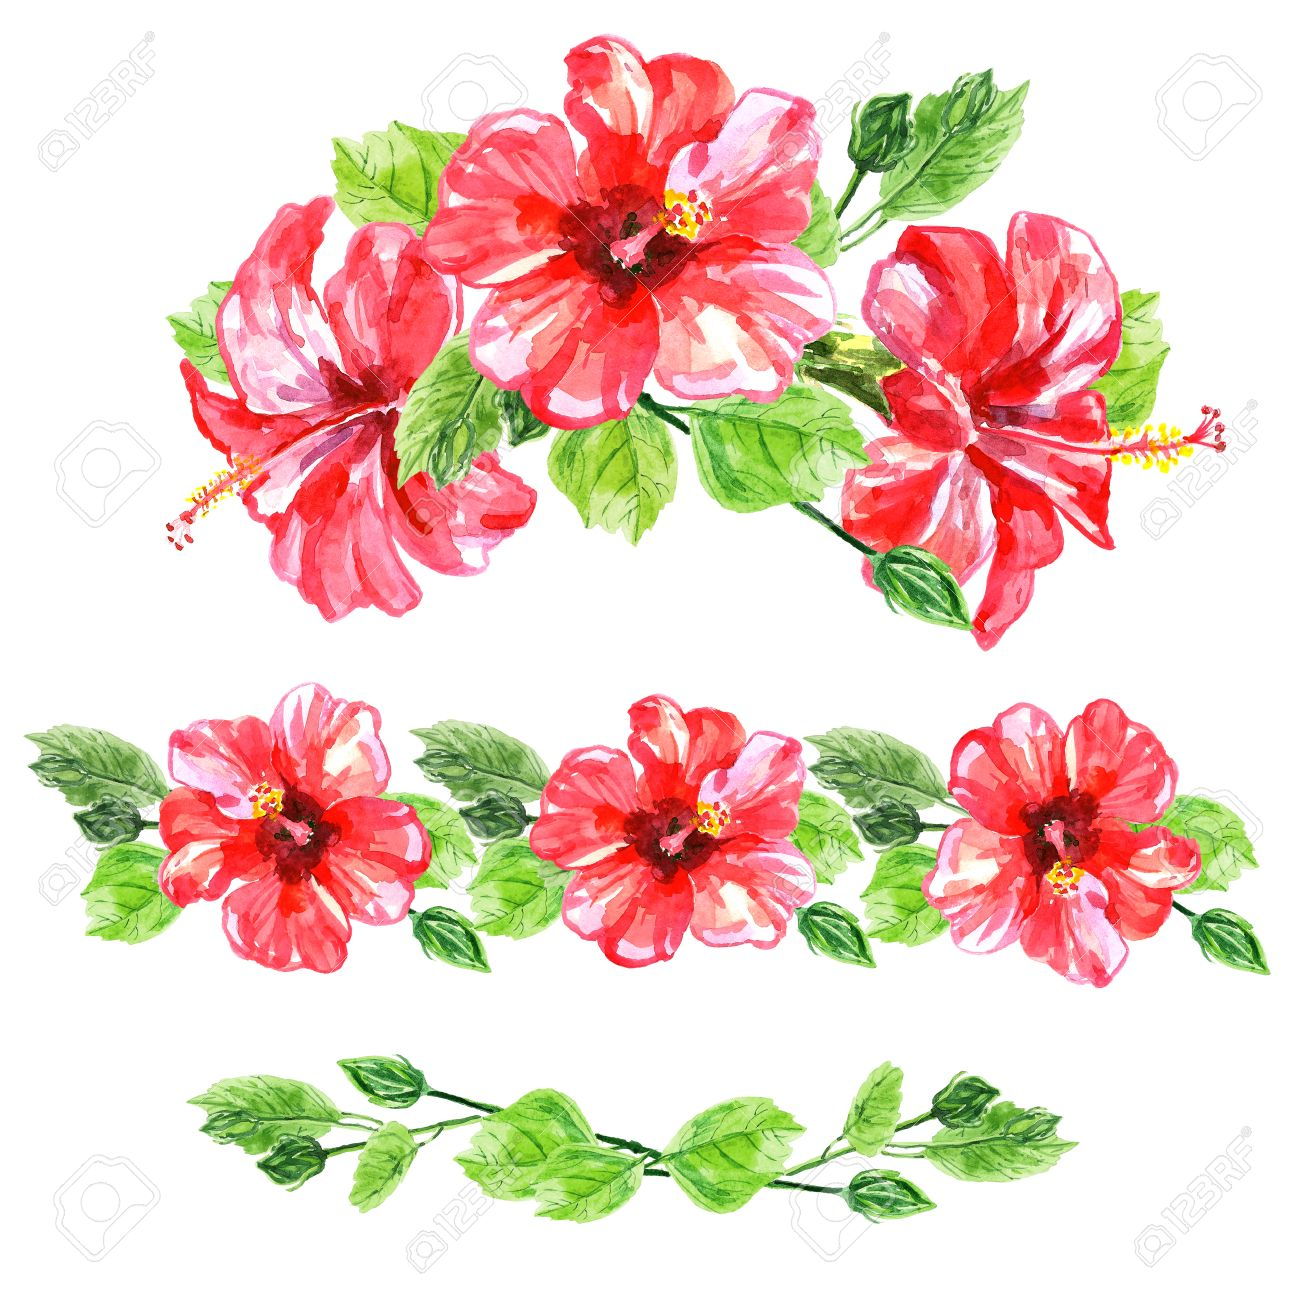 Hibiscus flower clipart image hibiscus flower - Set Of Red Watercolor Hibiscus Flower Illustration Isolated On White Background Colorful Floral Collection